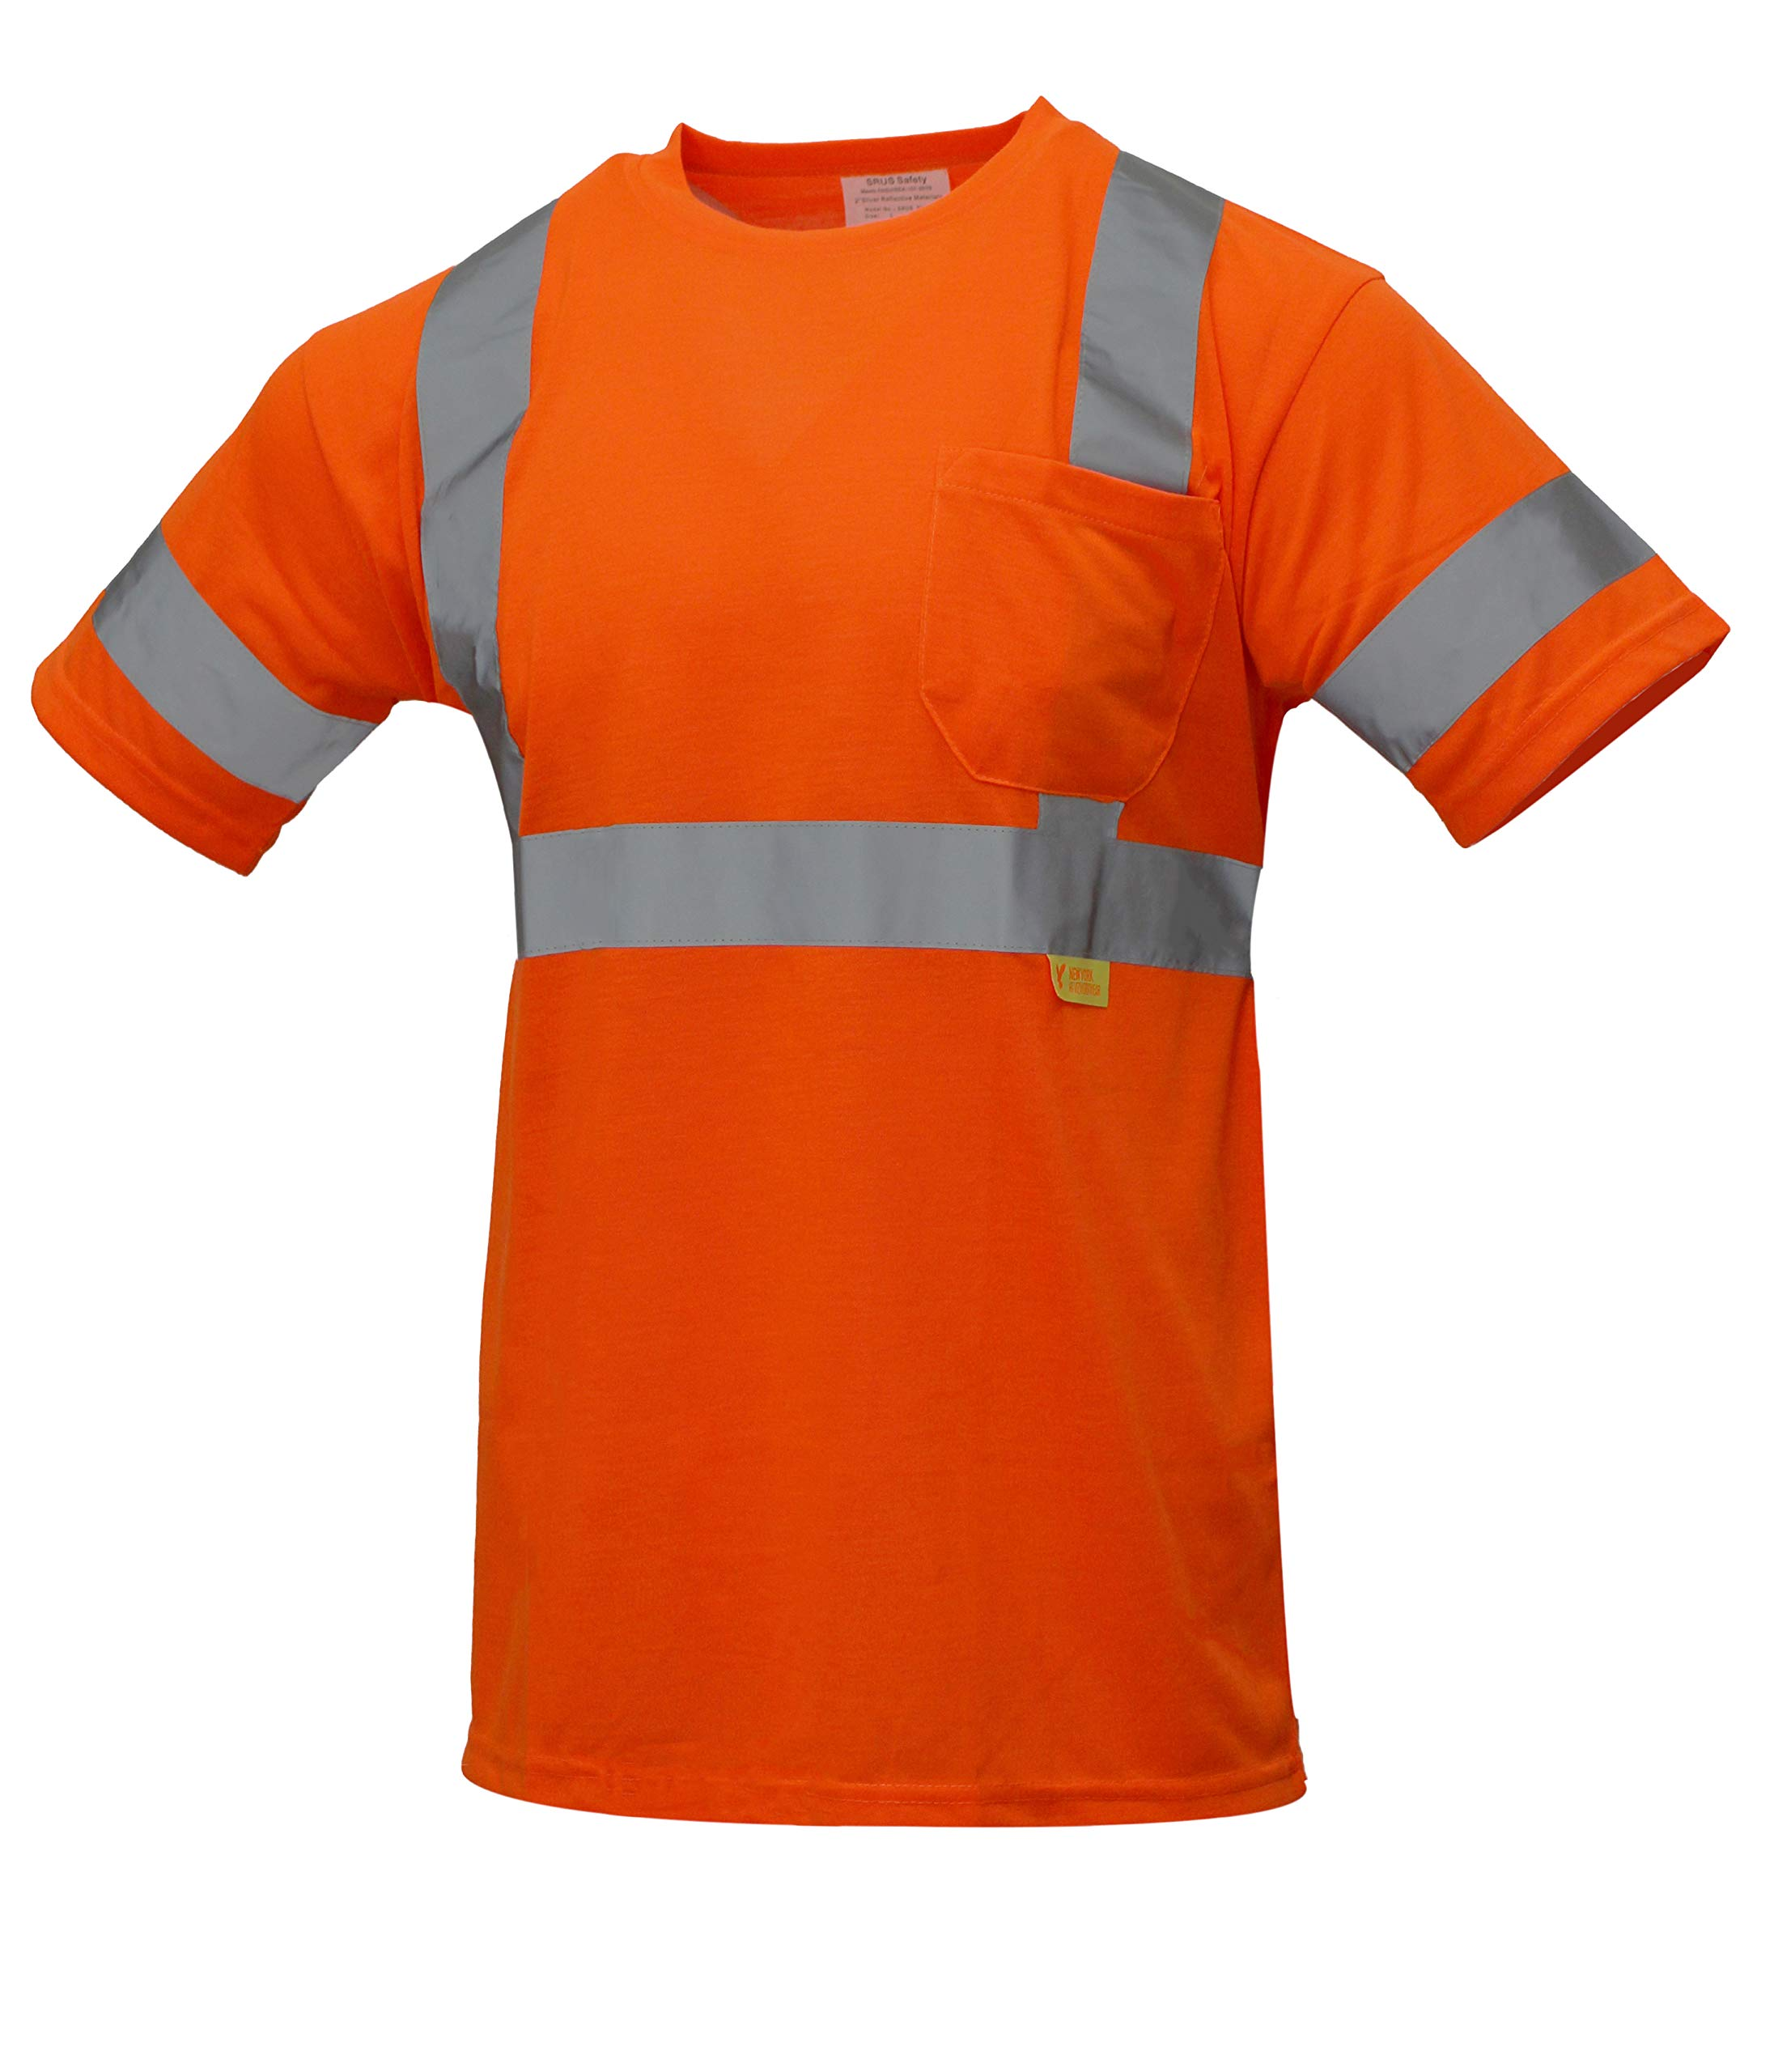 NY Hi-Viz Workwear 9081 Class 3 High Vis Reflective Short Sleeve ANSI Safety Shirt (SET OF 3(2XL), ORANGE)